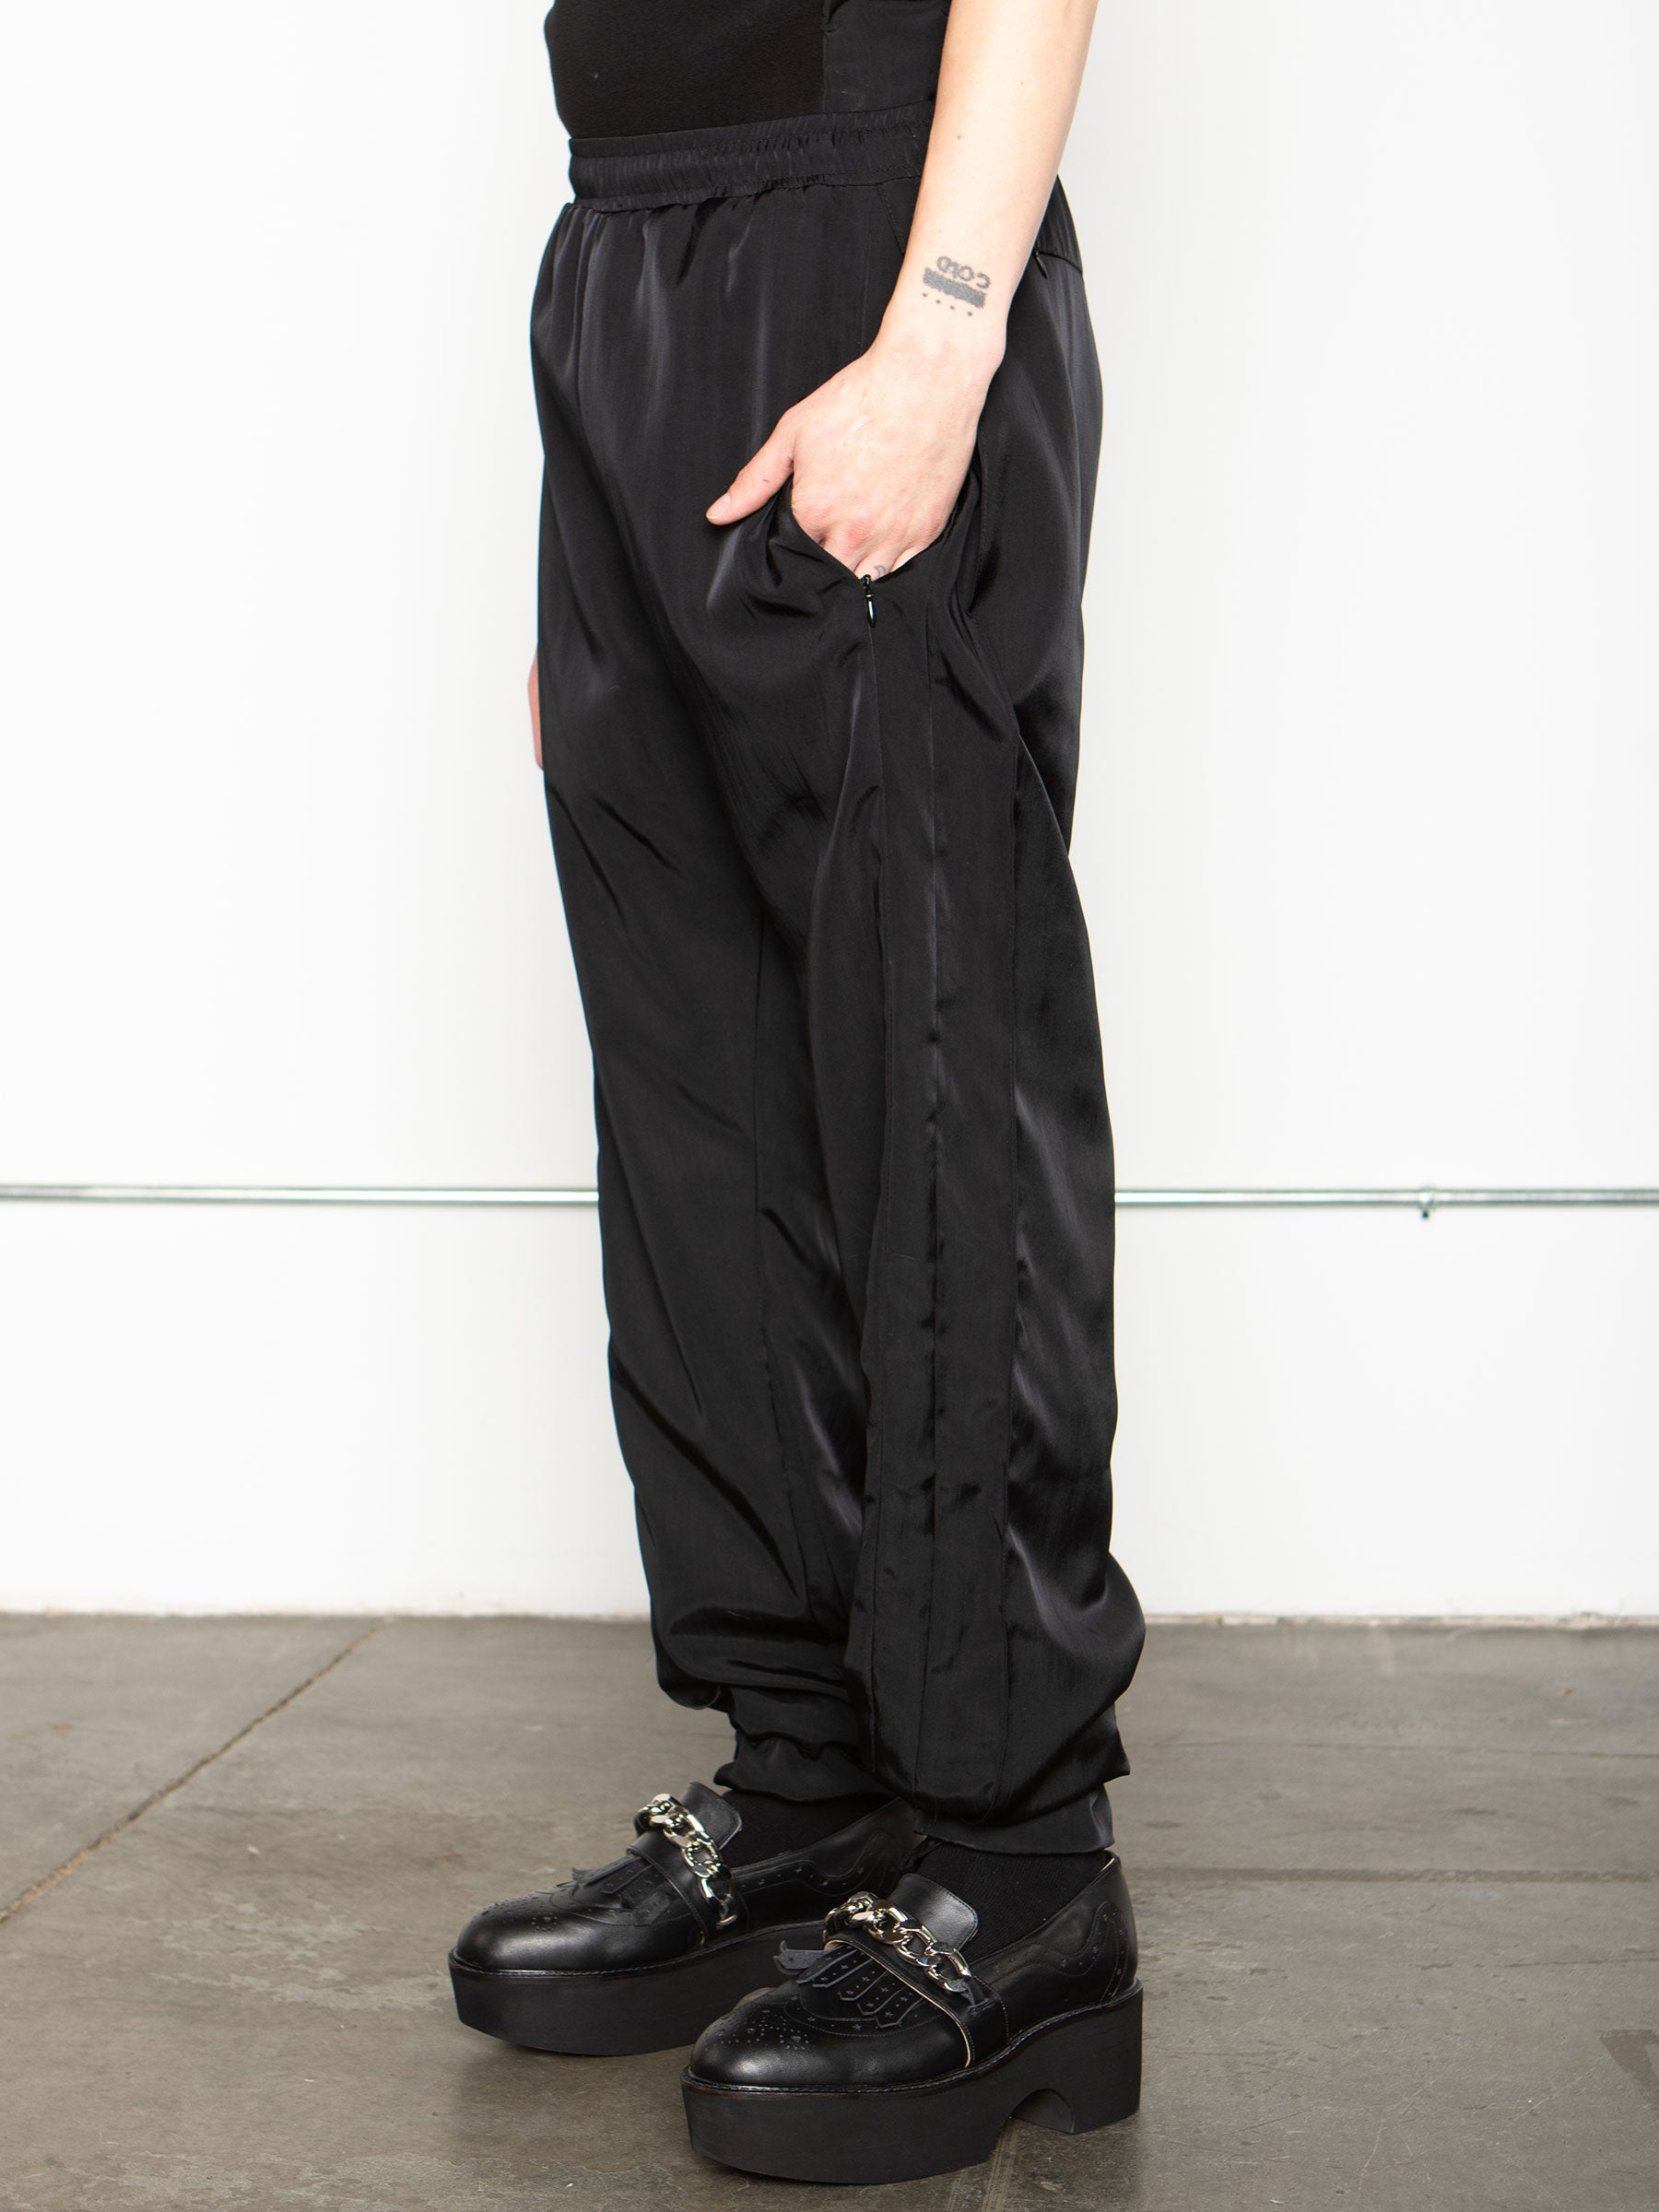 odd92 Shop Cottweiler Spring/Summer 2020 Menswear Black Caddie Track Pants - 3